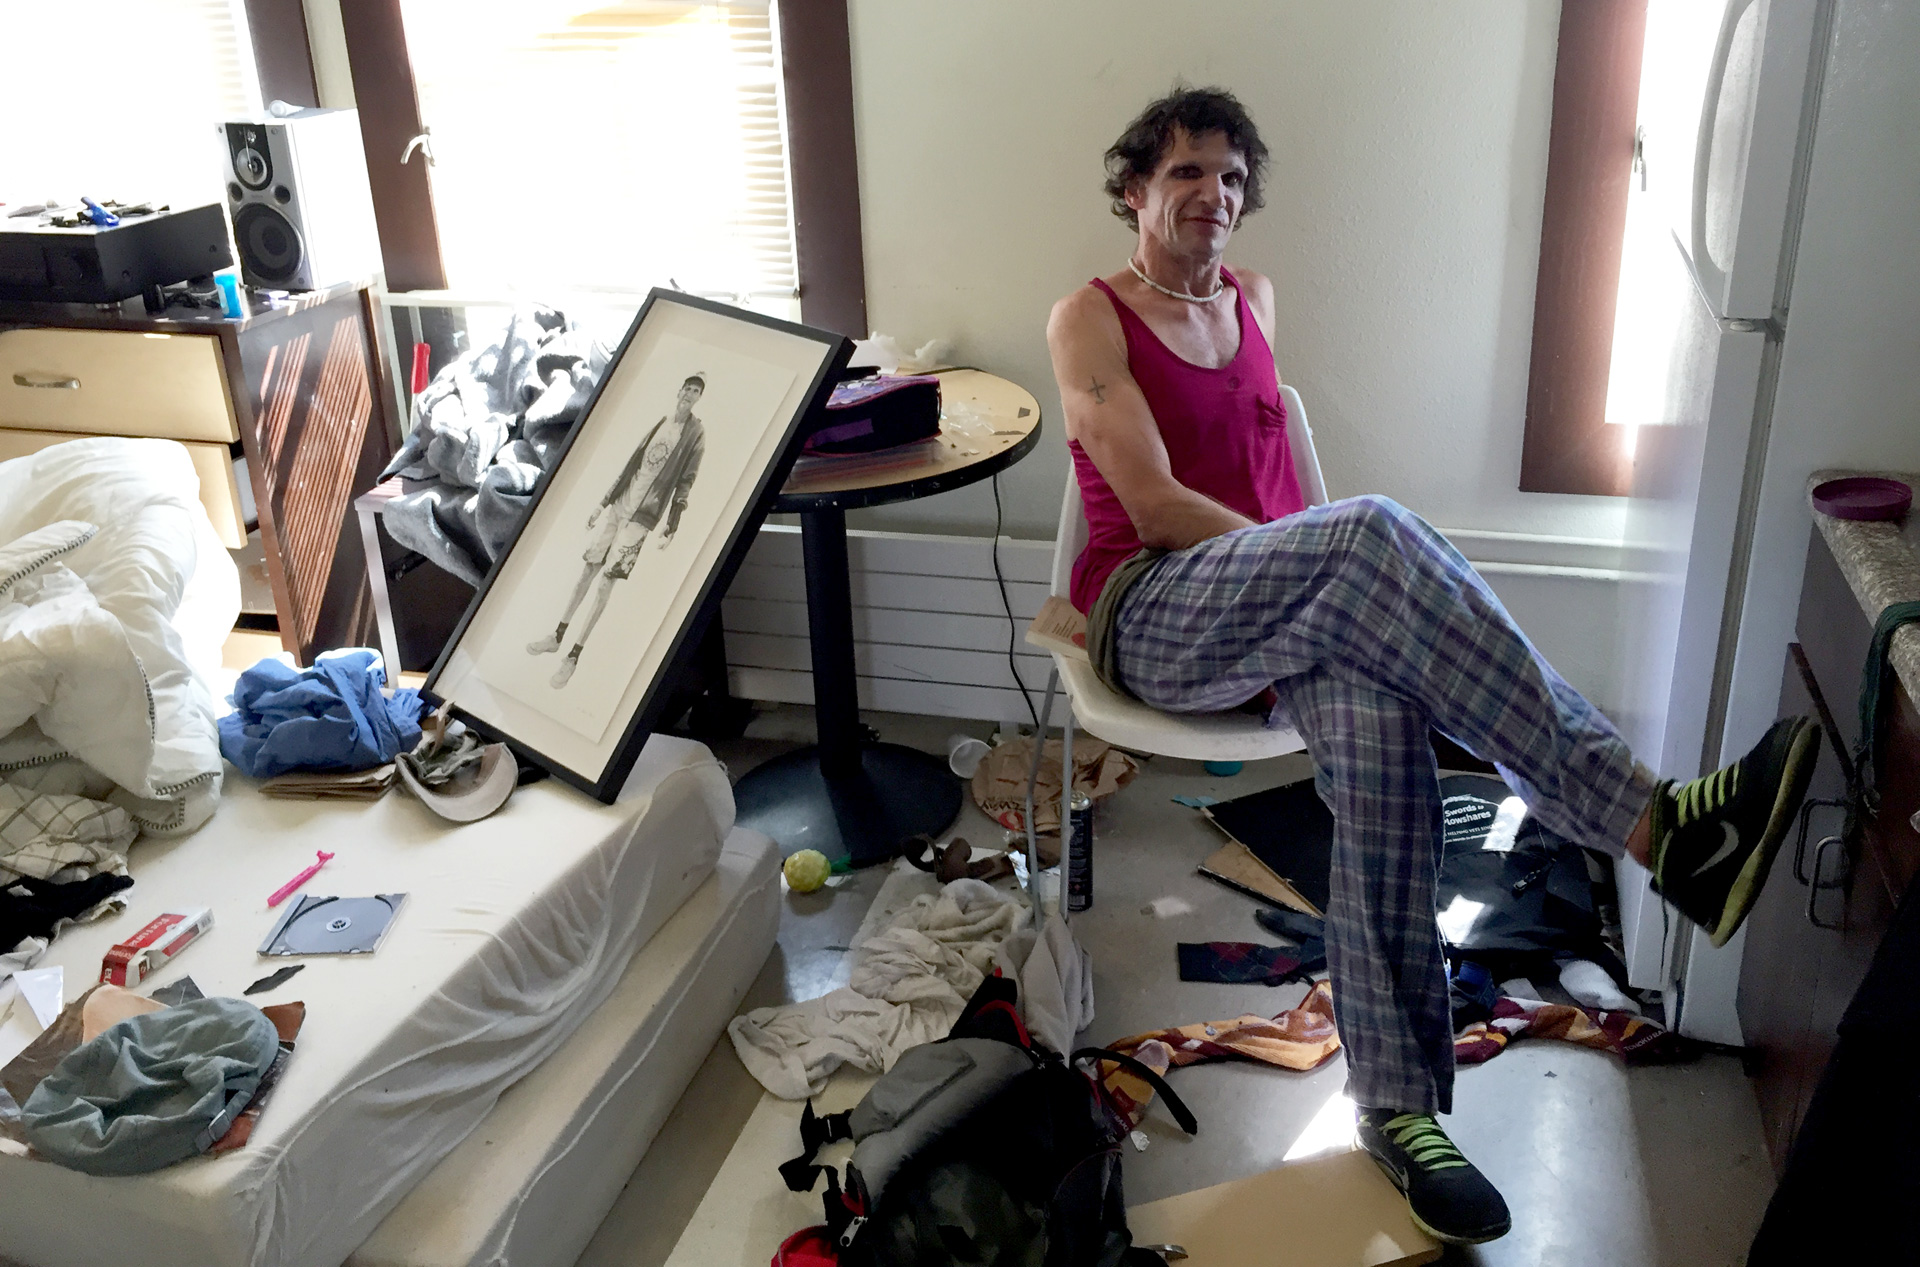 George Arthur sits in his new studio apartment in San Francisco, after spending 25 years living in shelters and on the streets.